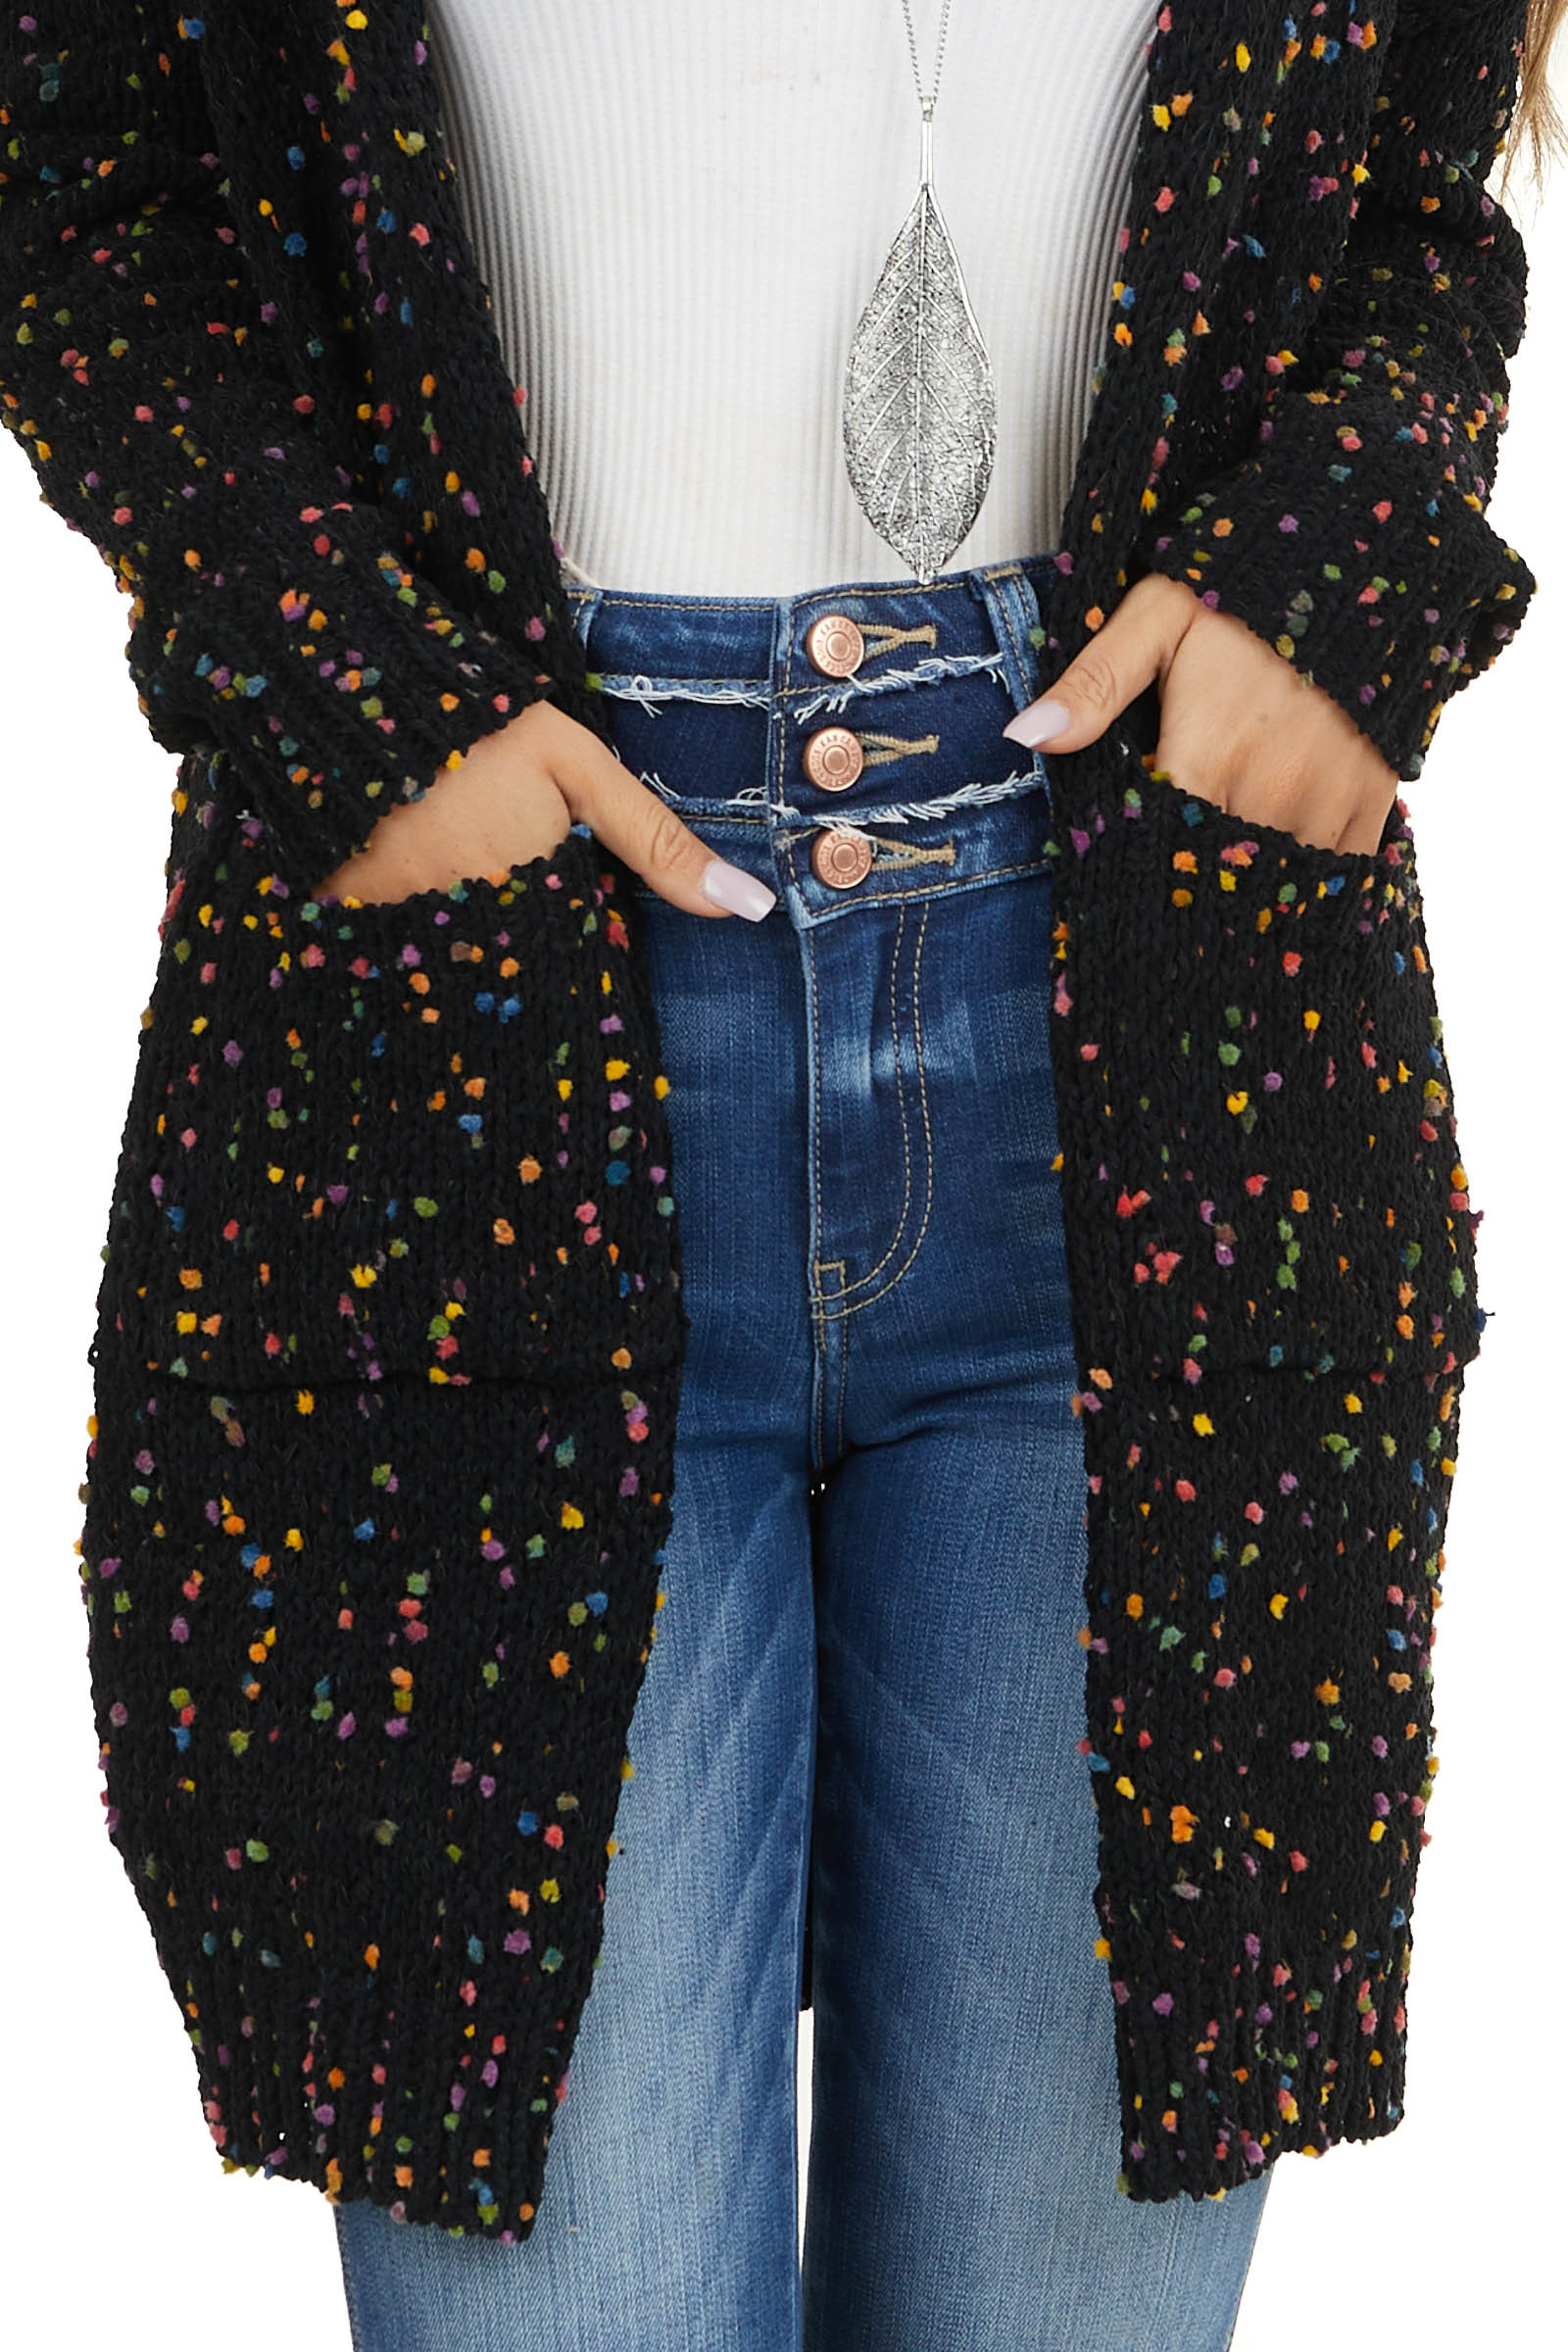 Black Knit Cardigan with Rainbow Speckles and Pockets